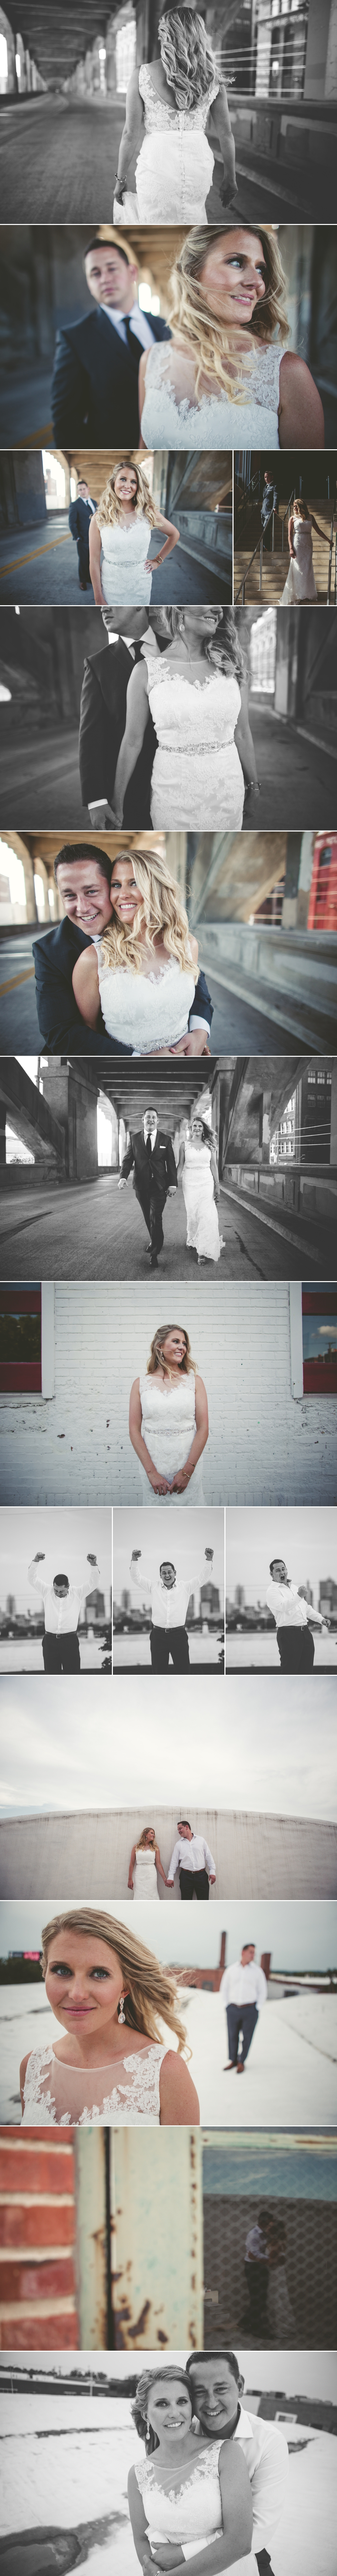 jason_domingues_photography_best_kansas_city_wedding_photographer_kc_weddings_black_on_burlington_0002.JPG